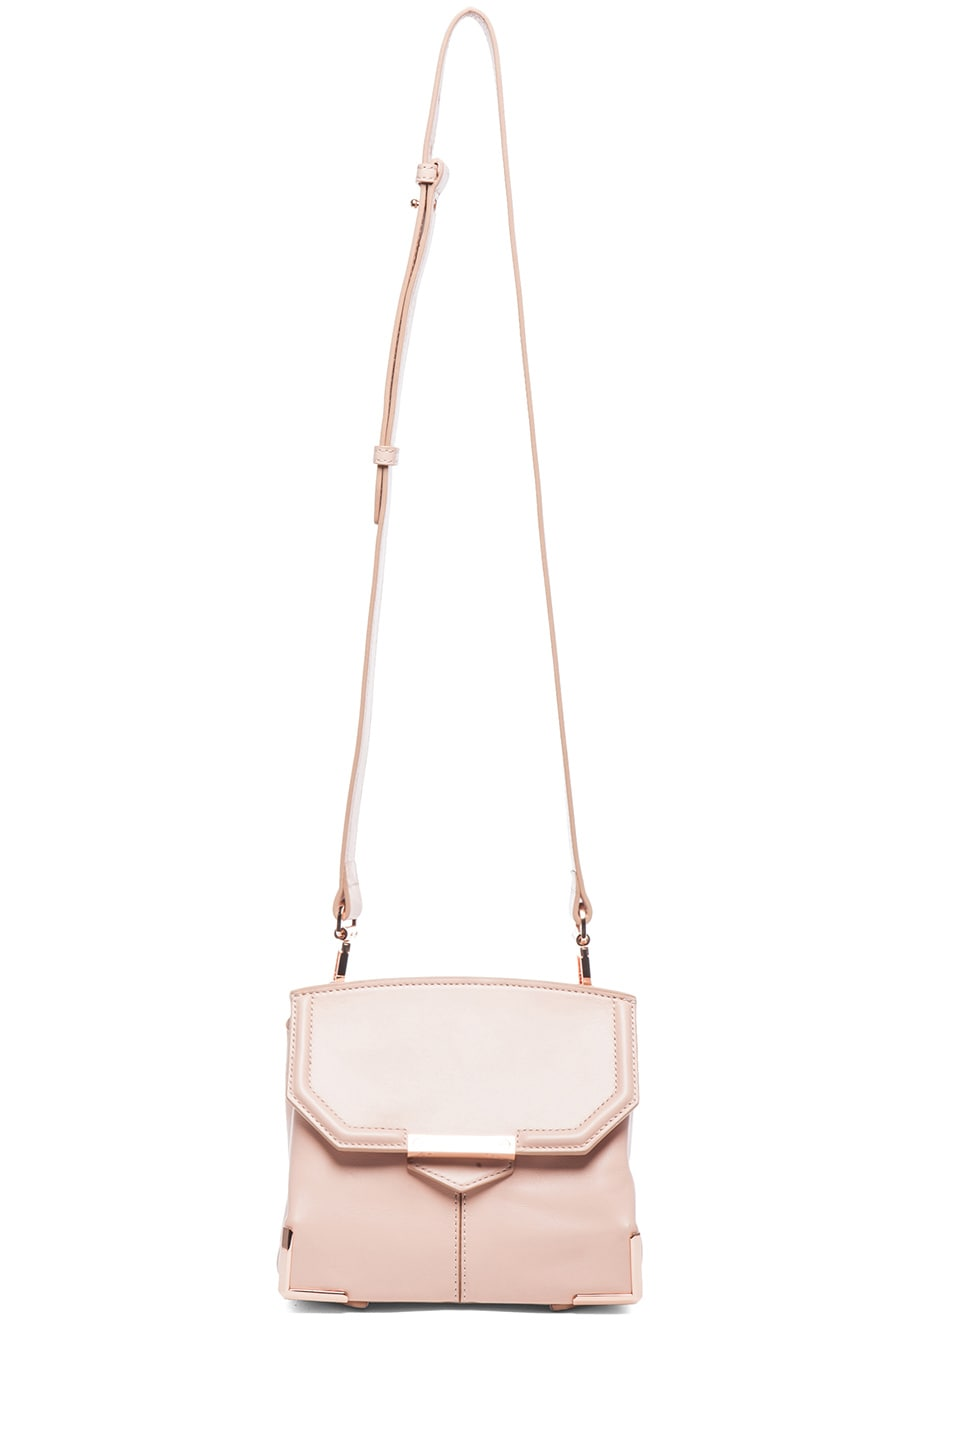 Image 5 of Alexander Wang Marion Handbag in Rose